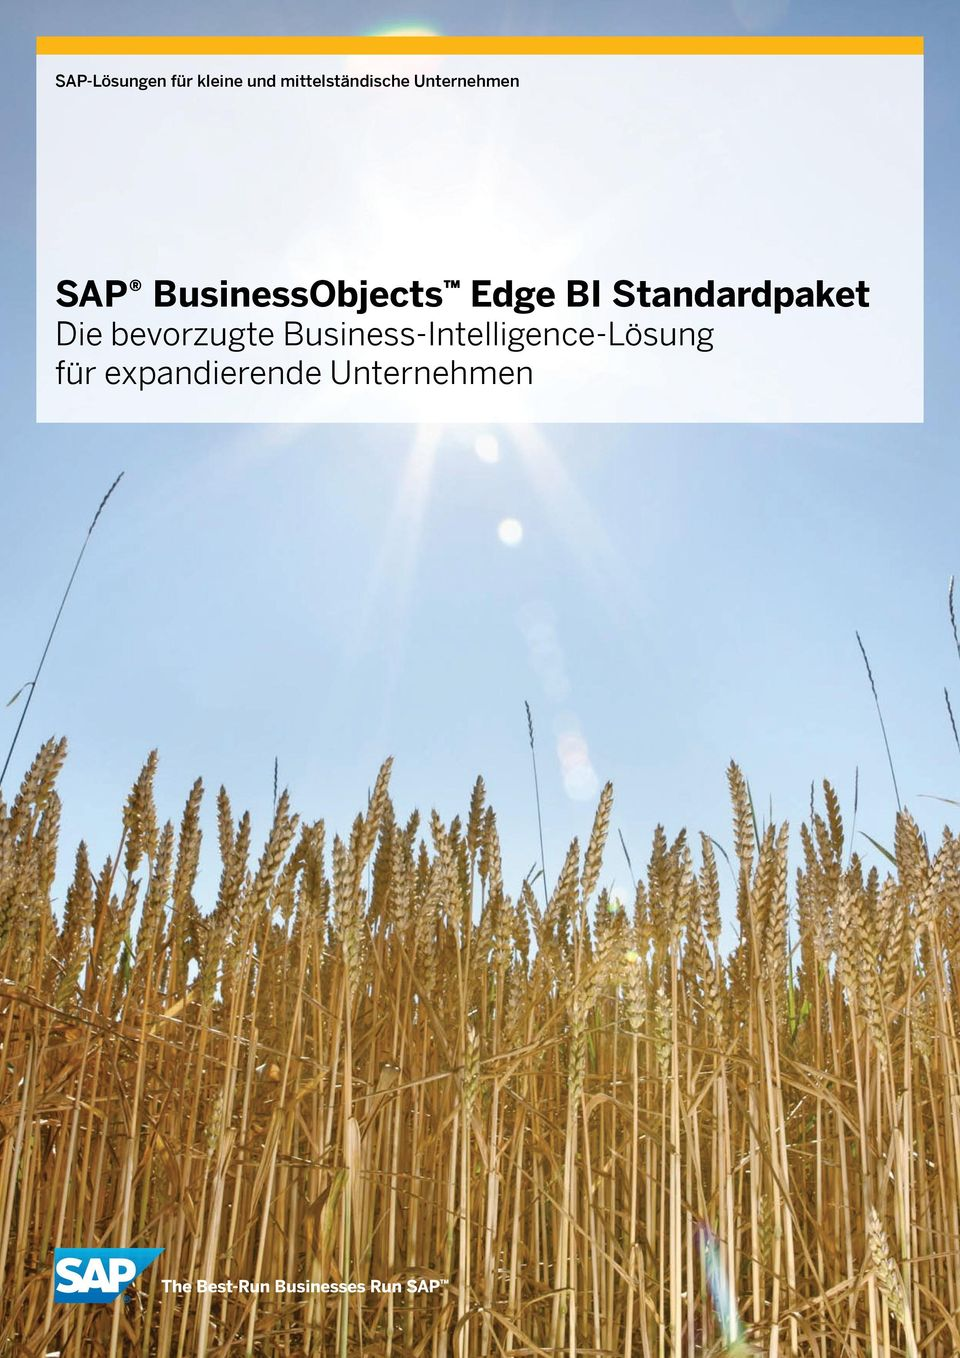 BusinessObjects Edge BI Standardpaket Die